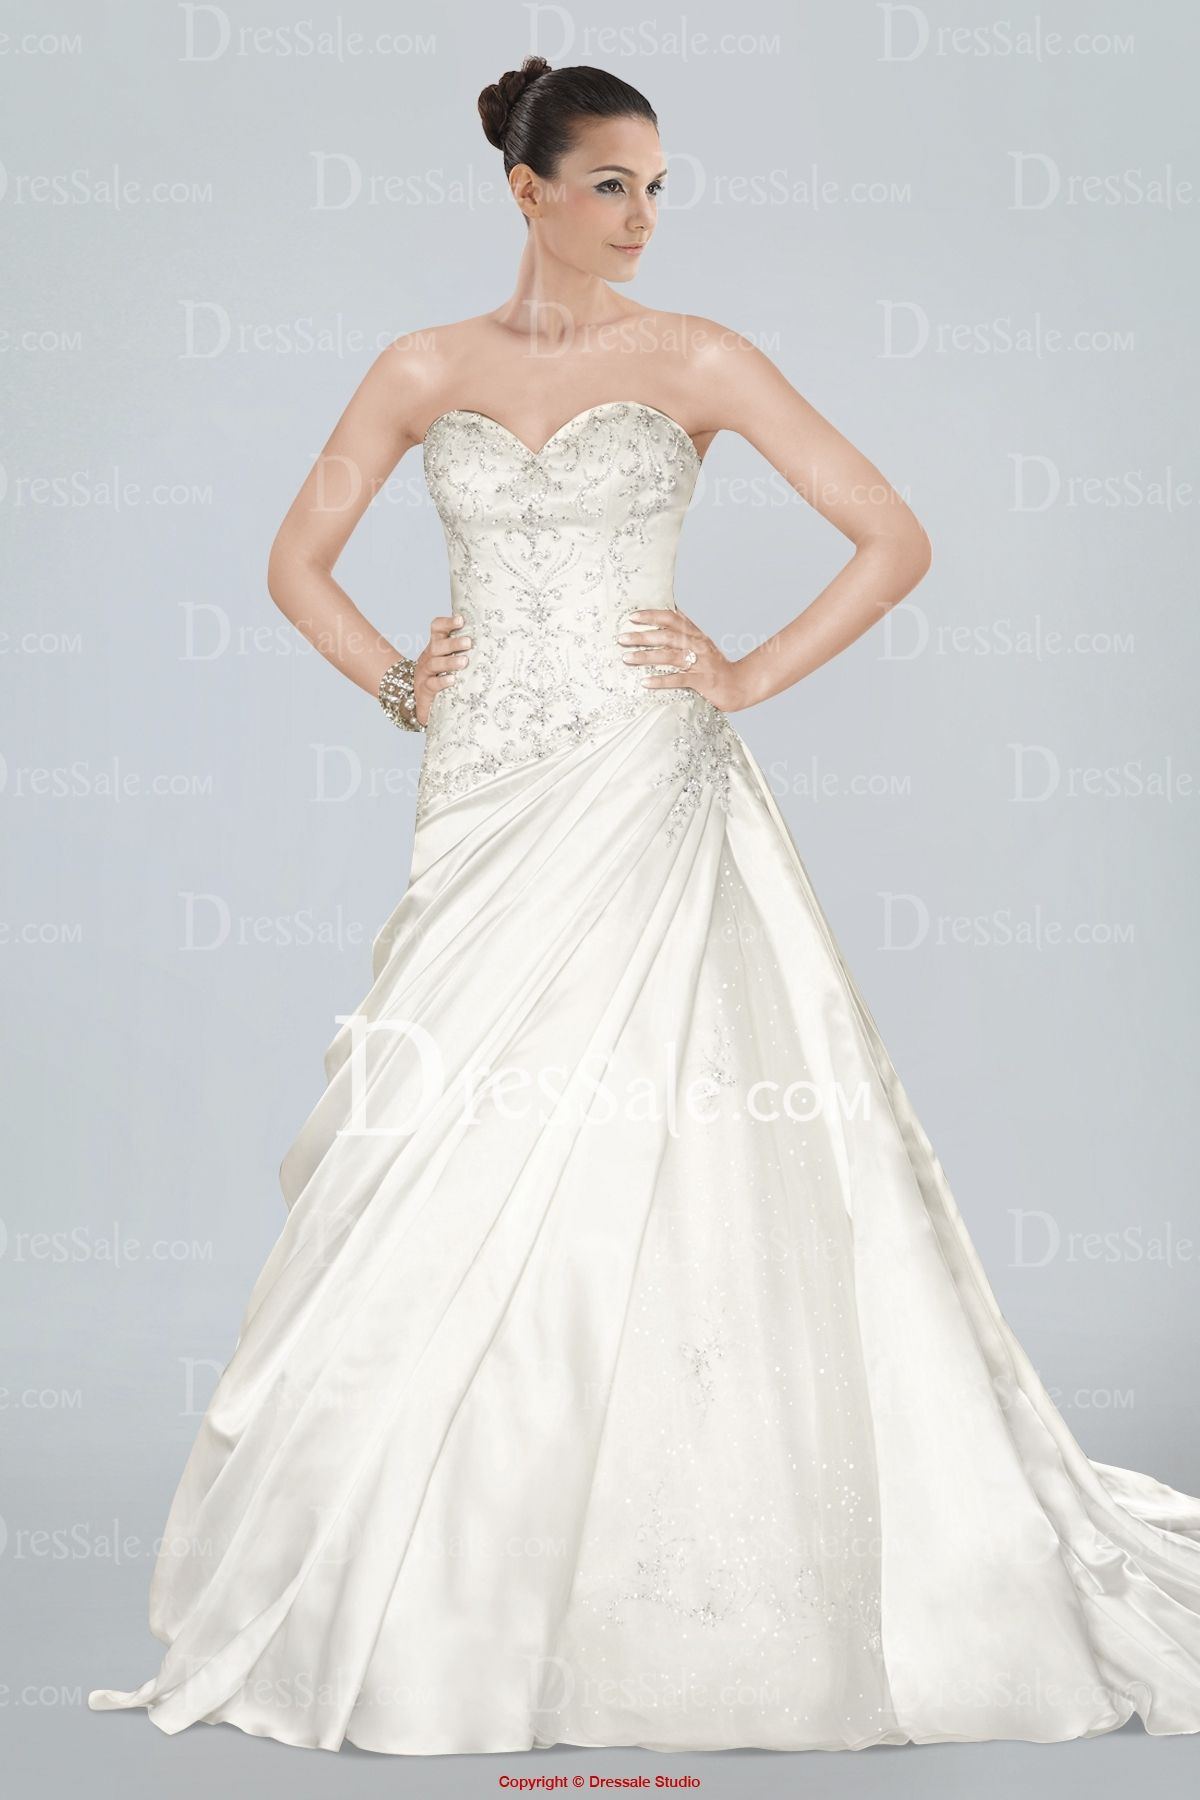 Pleated wedding dress  I like this Do you think I should buy it  wedding dresses